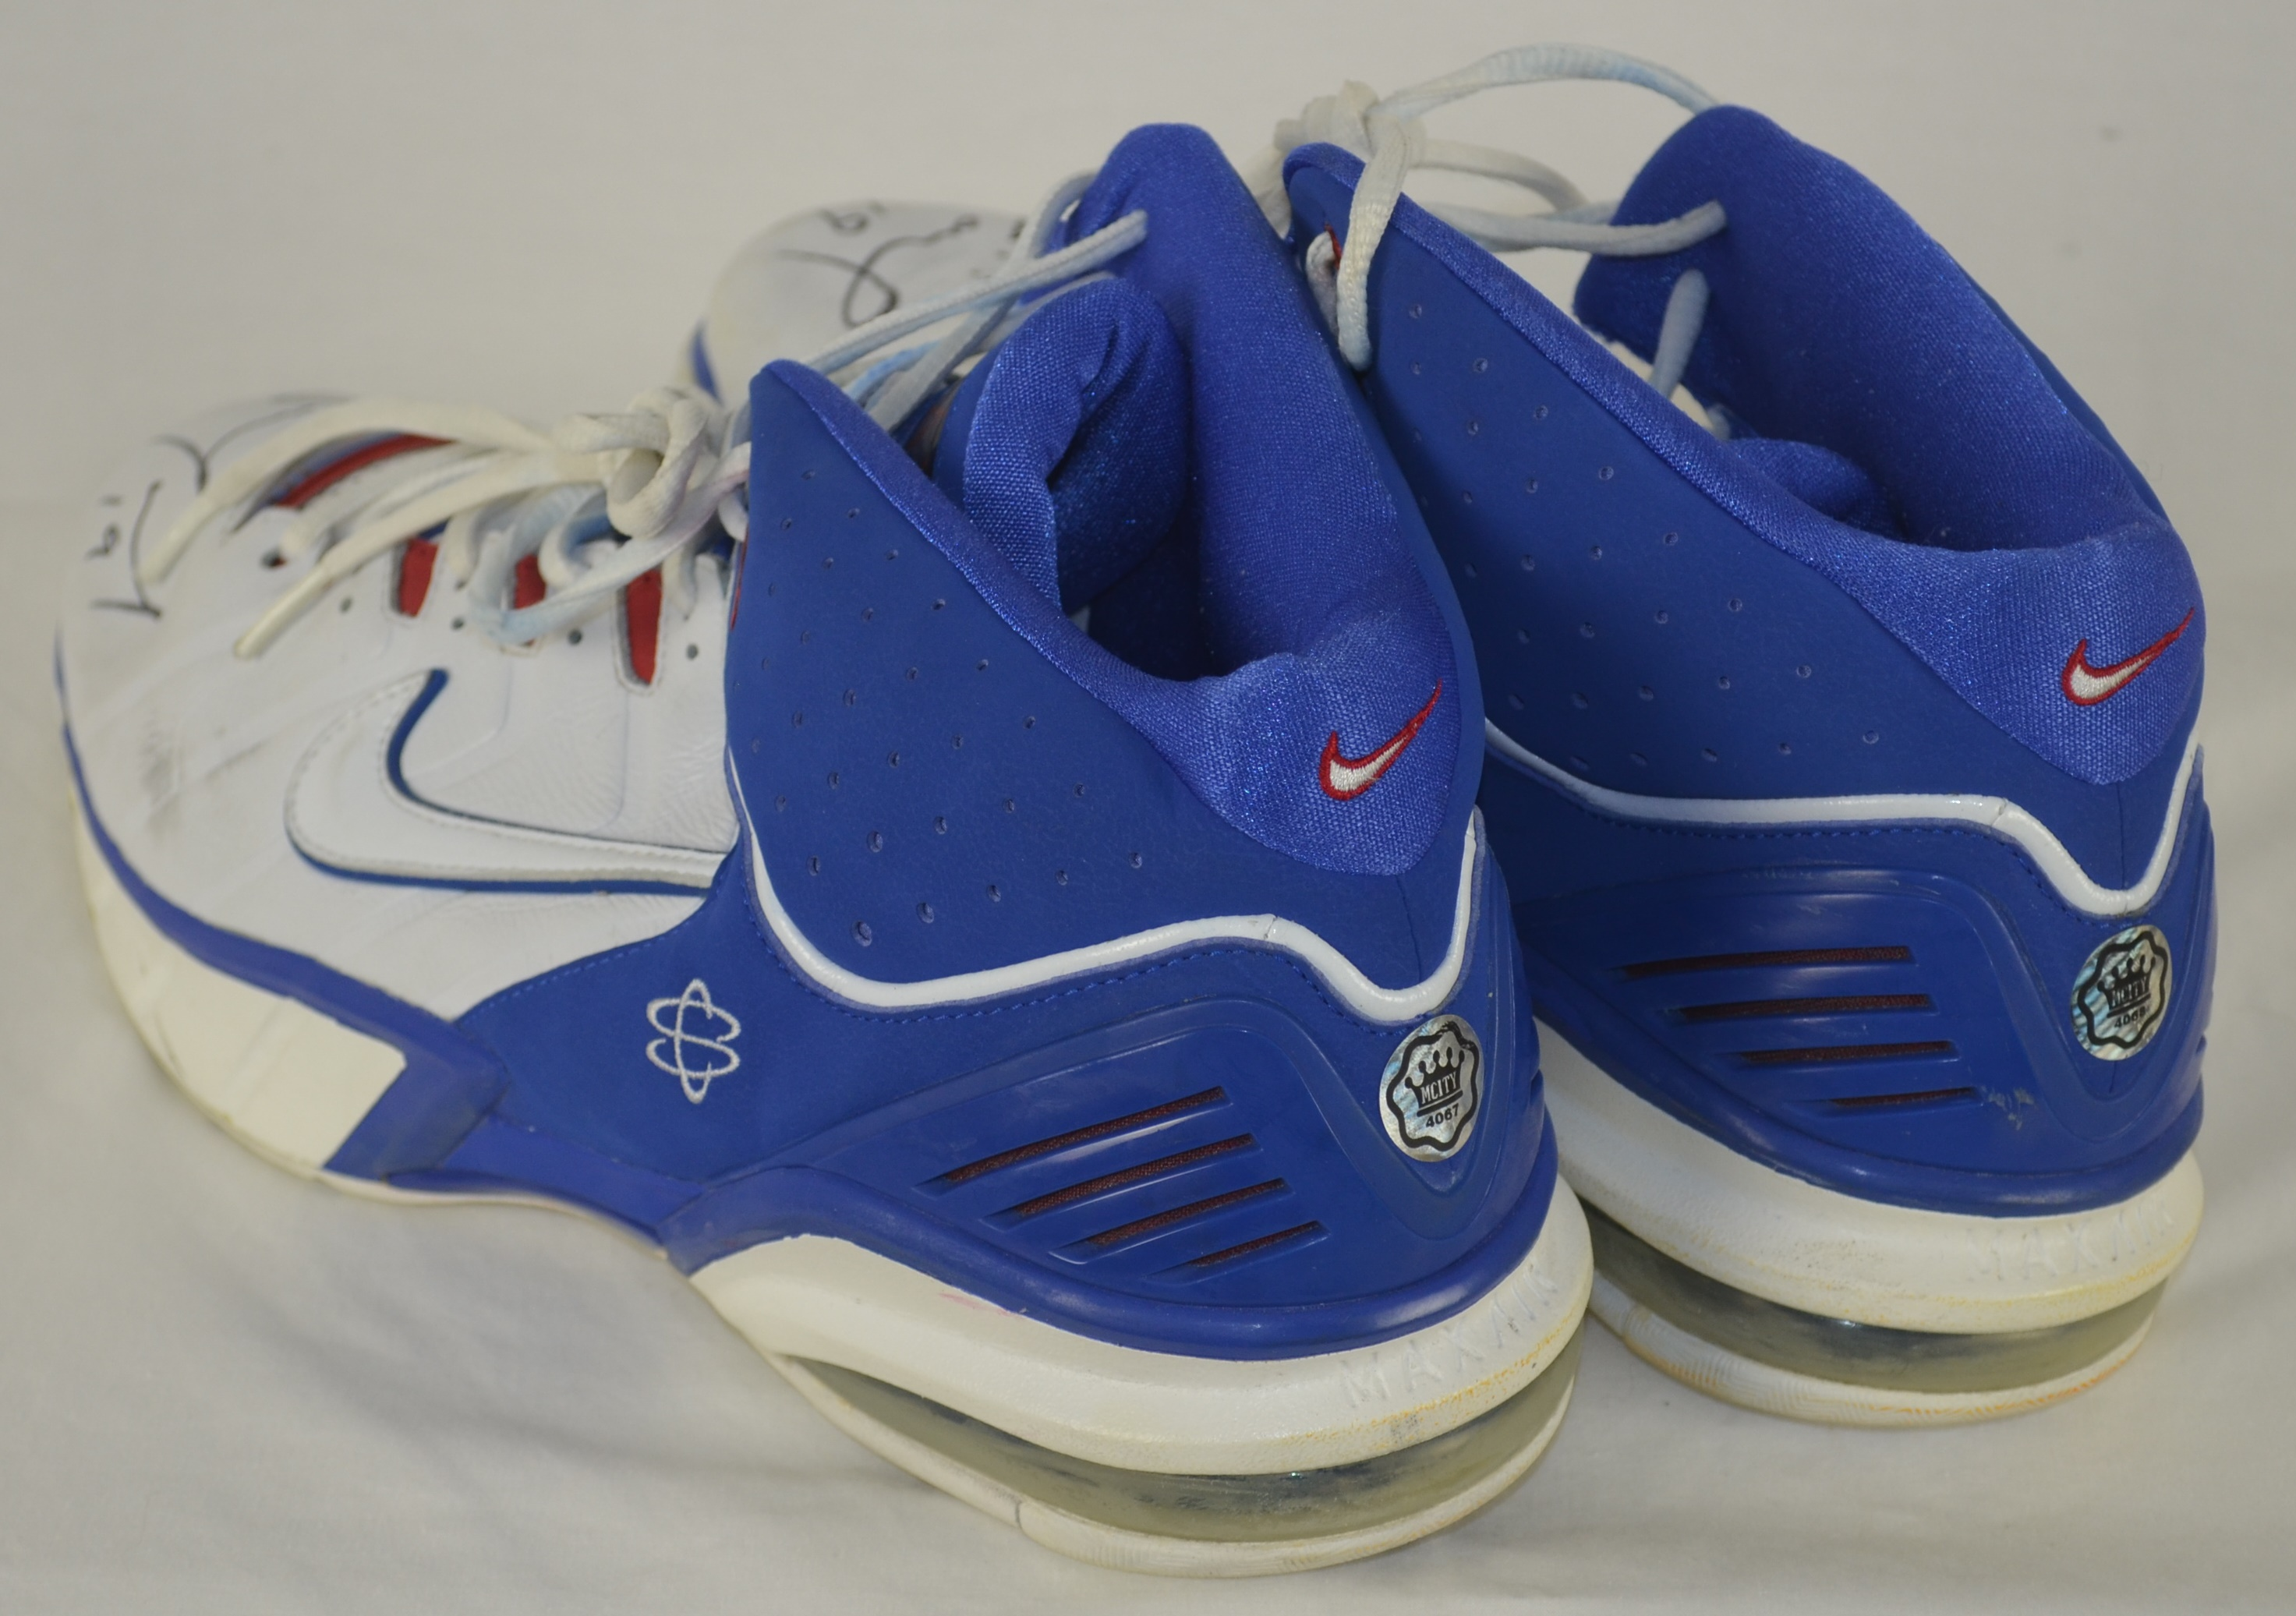 separation shoes 84ee5 4d41f ... Sam Cassell LA Clippers Professional Model Shoes w Medium Use